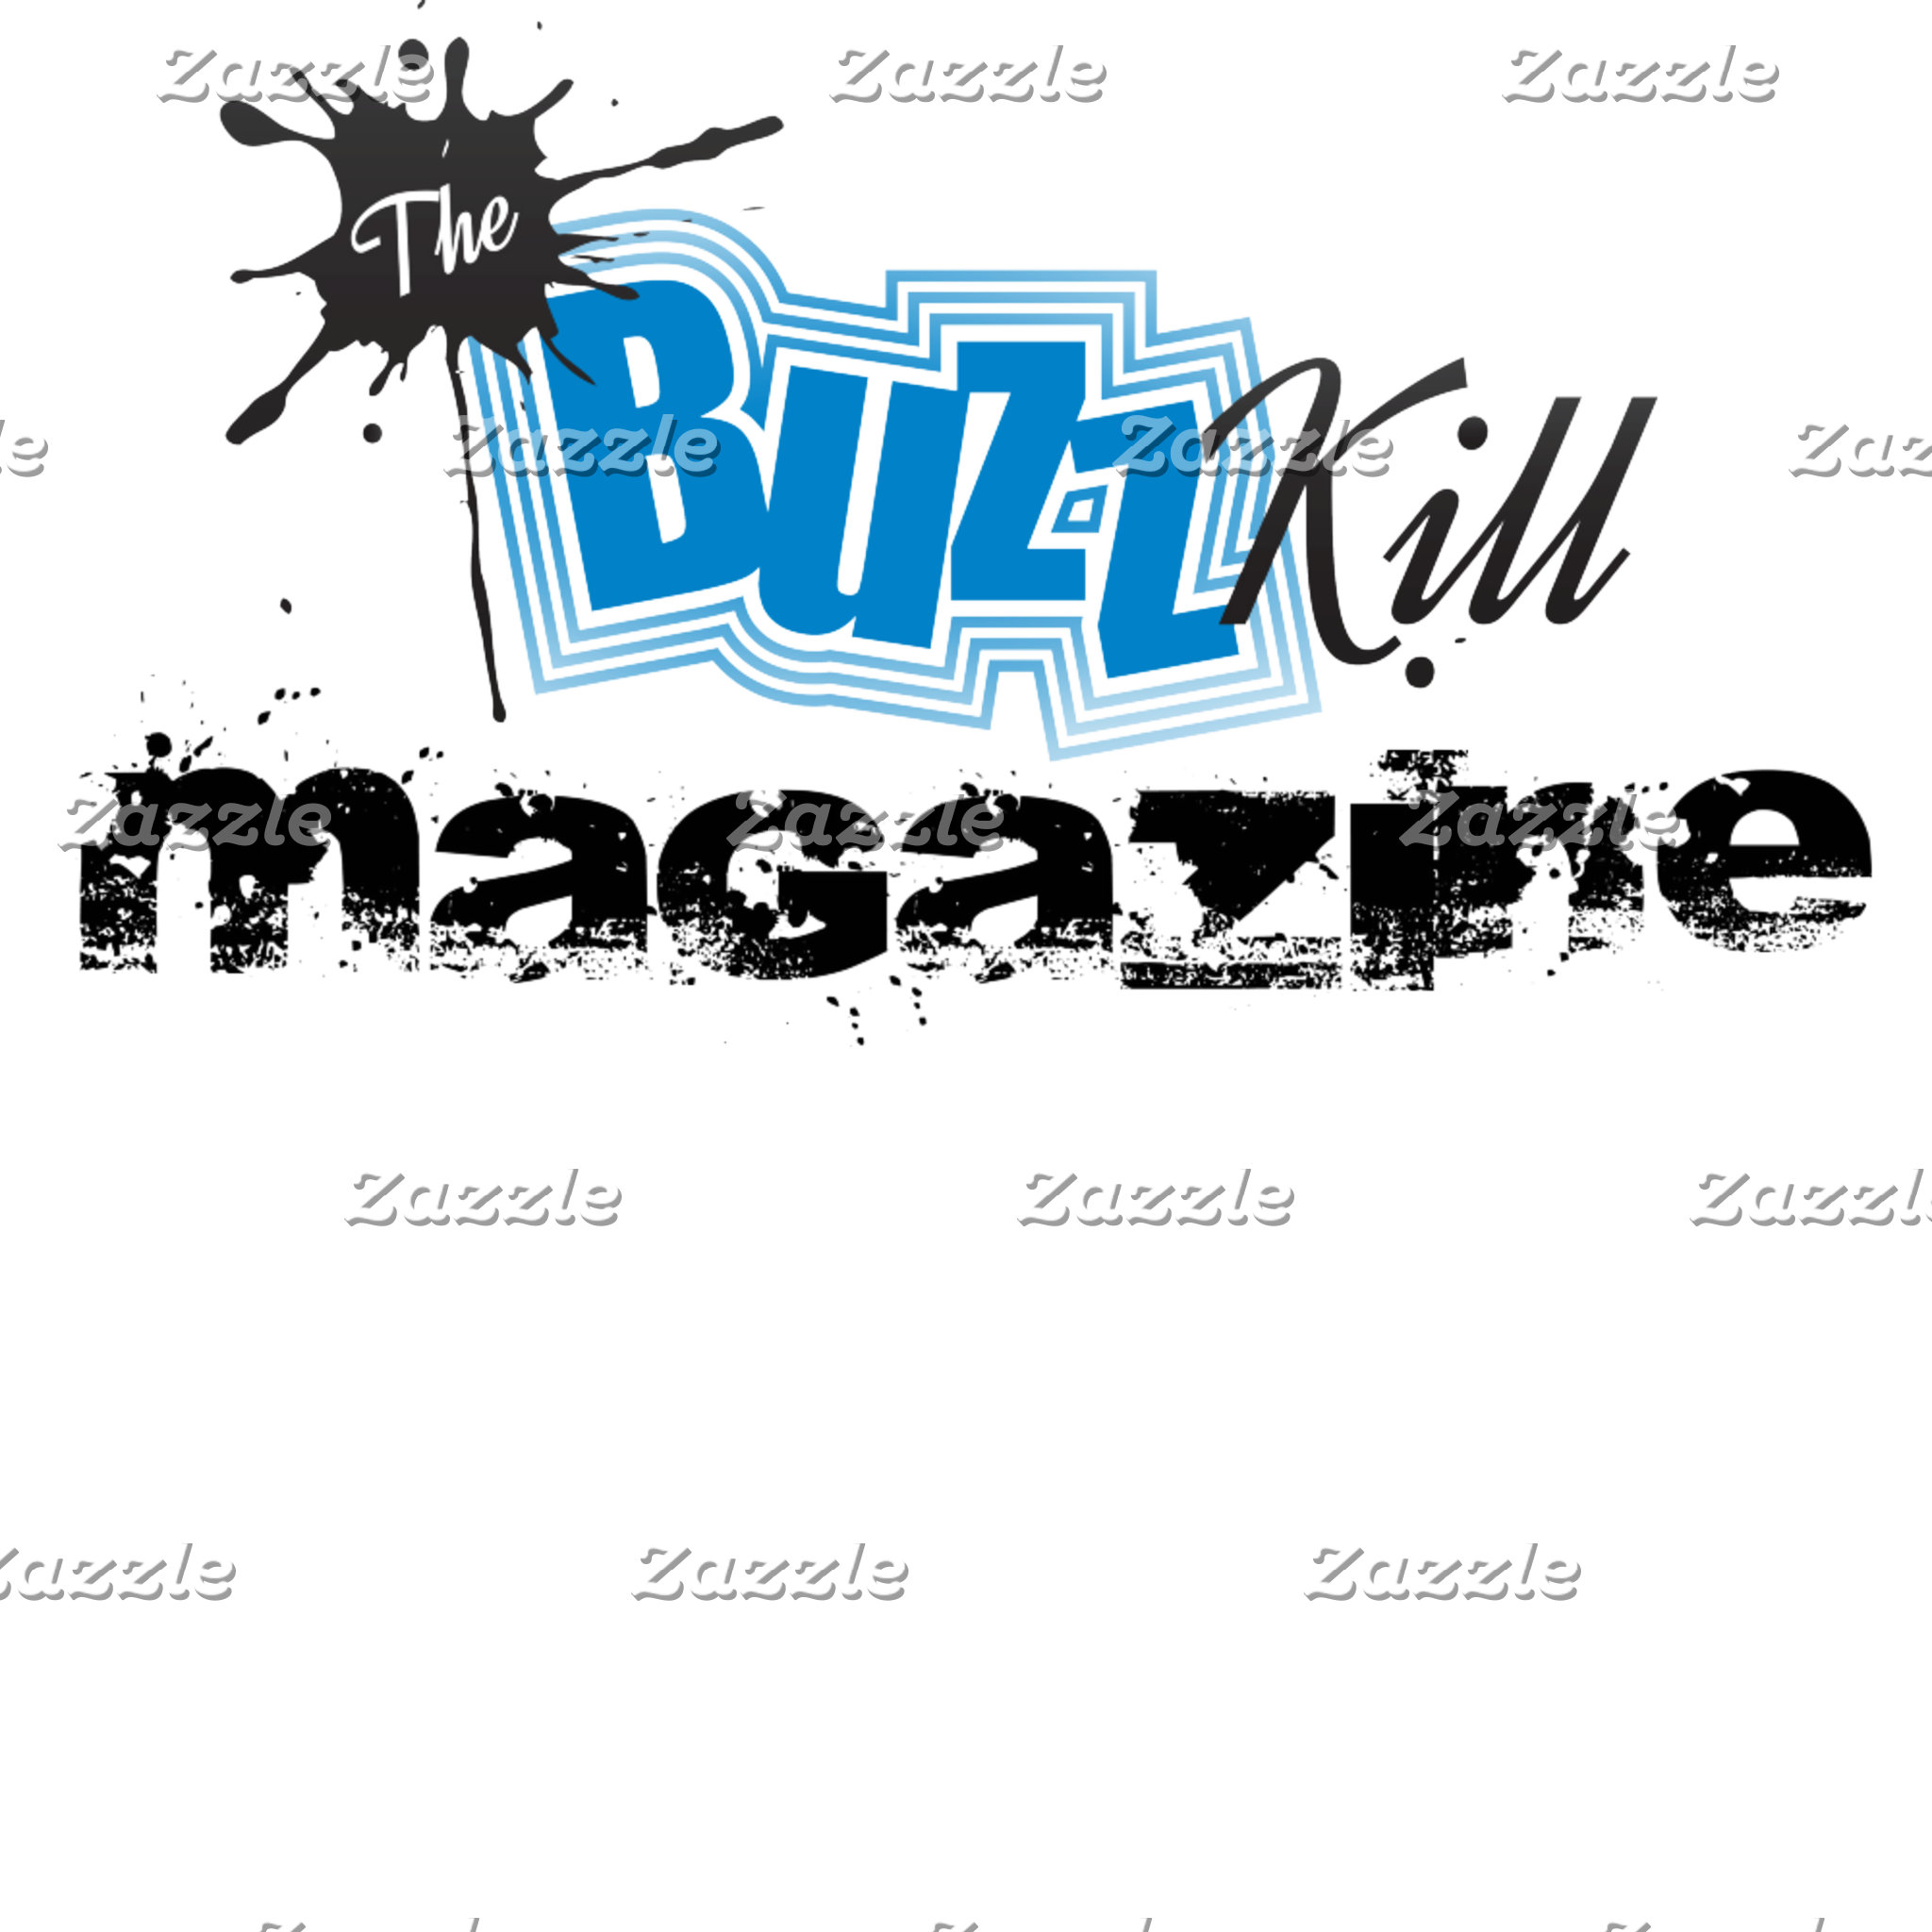 The Buzz Kill Magazine